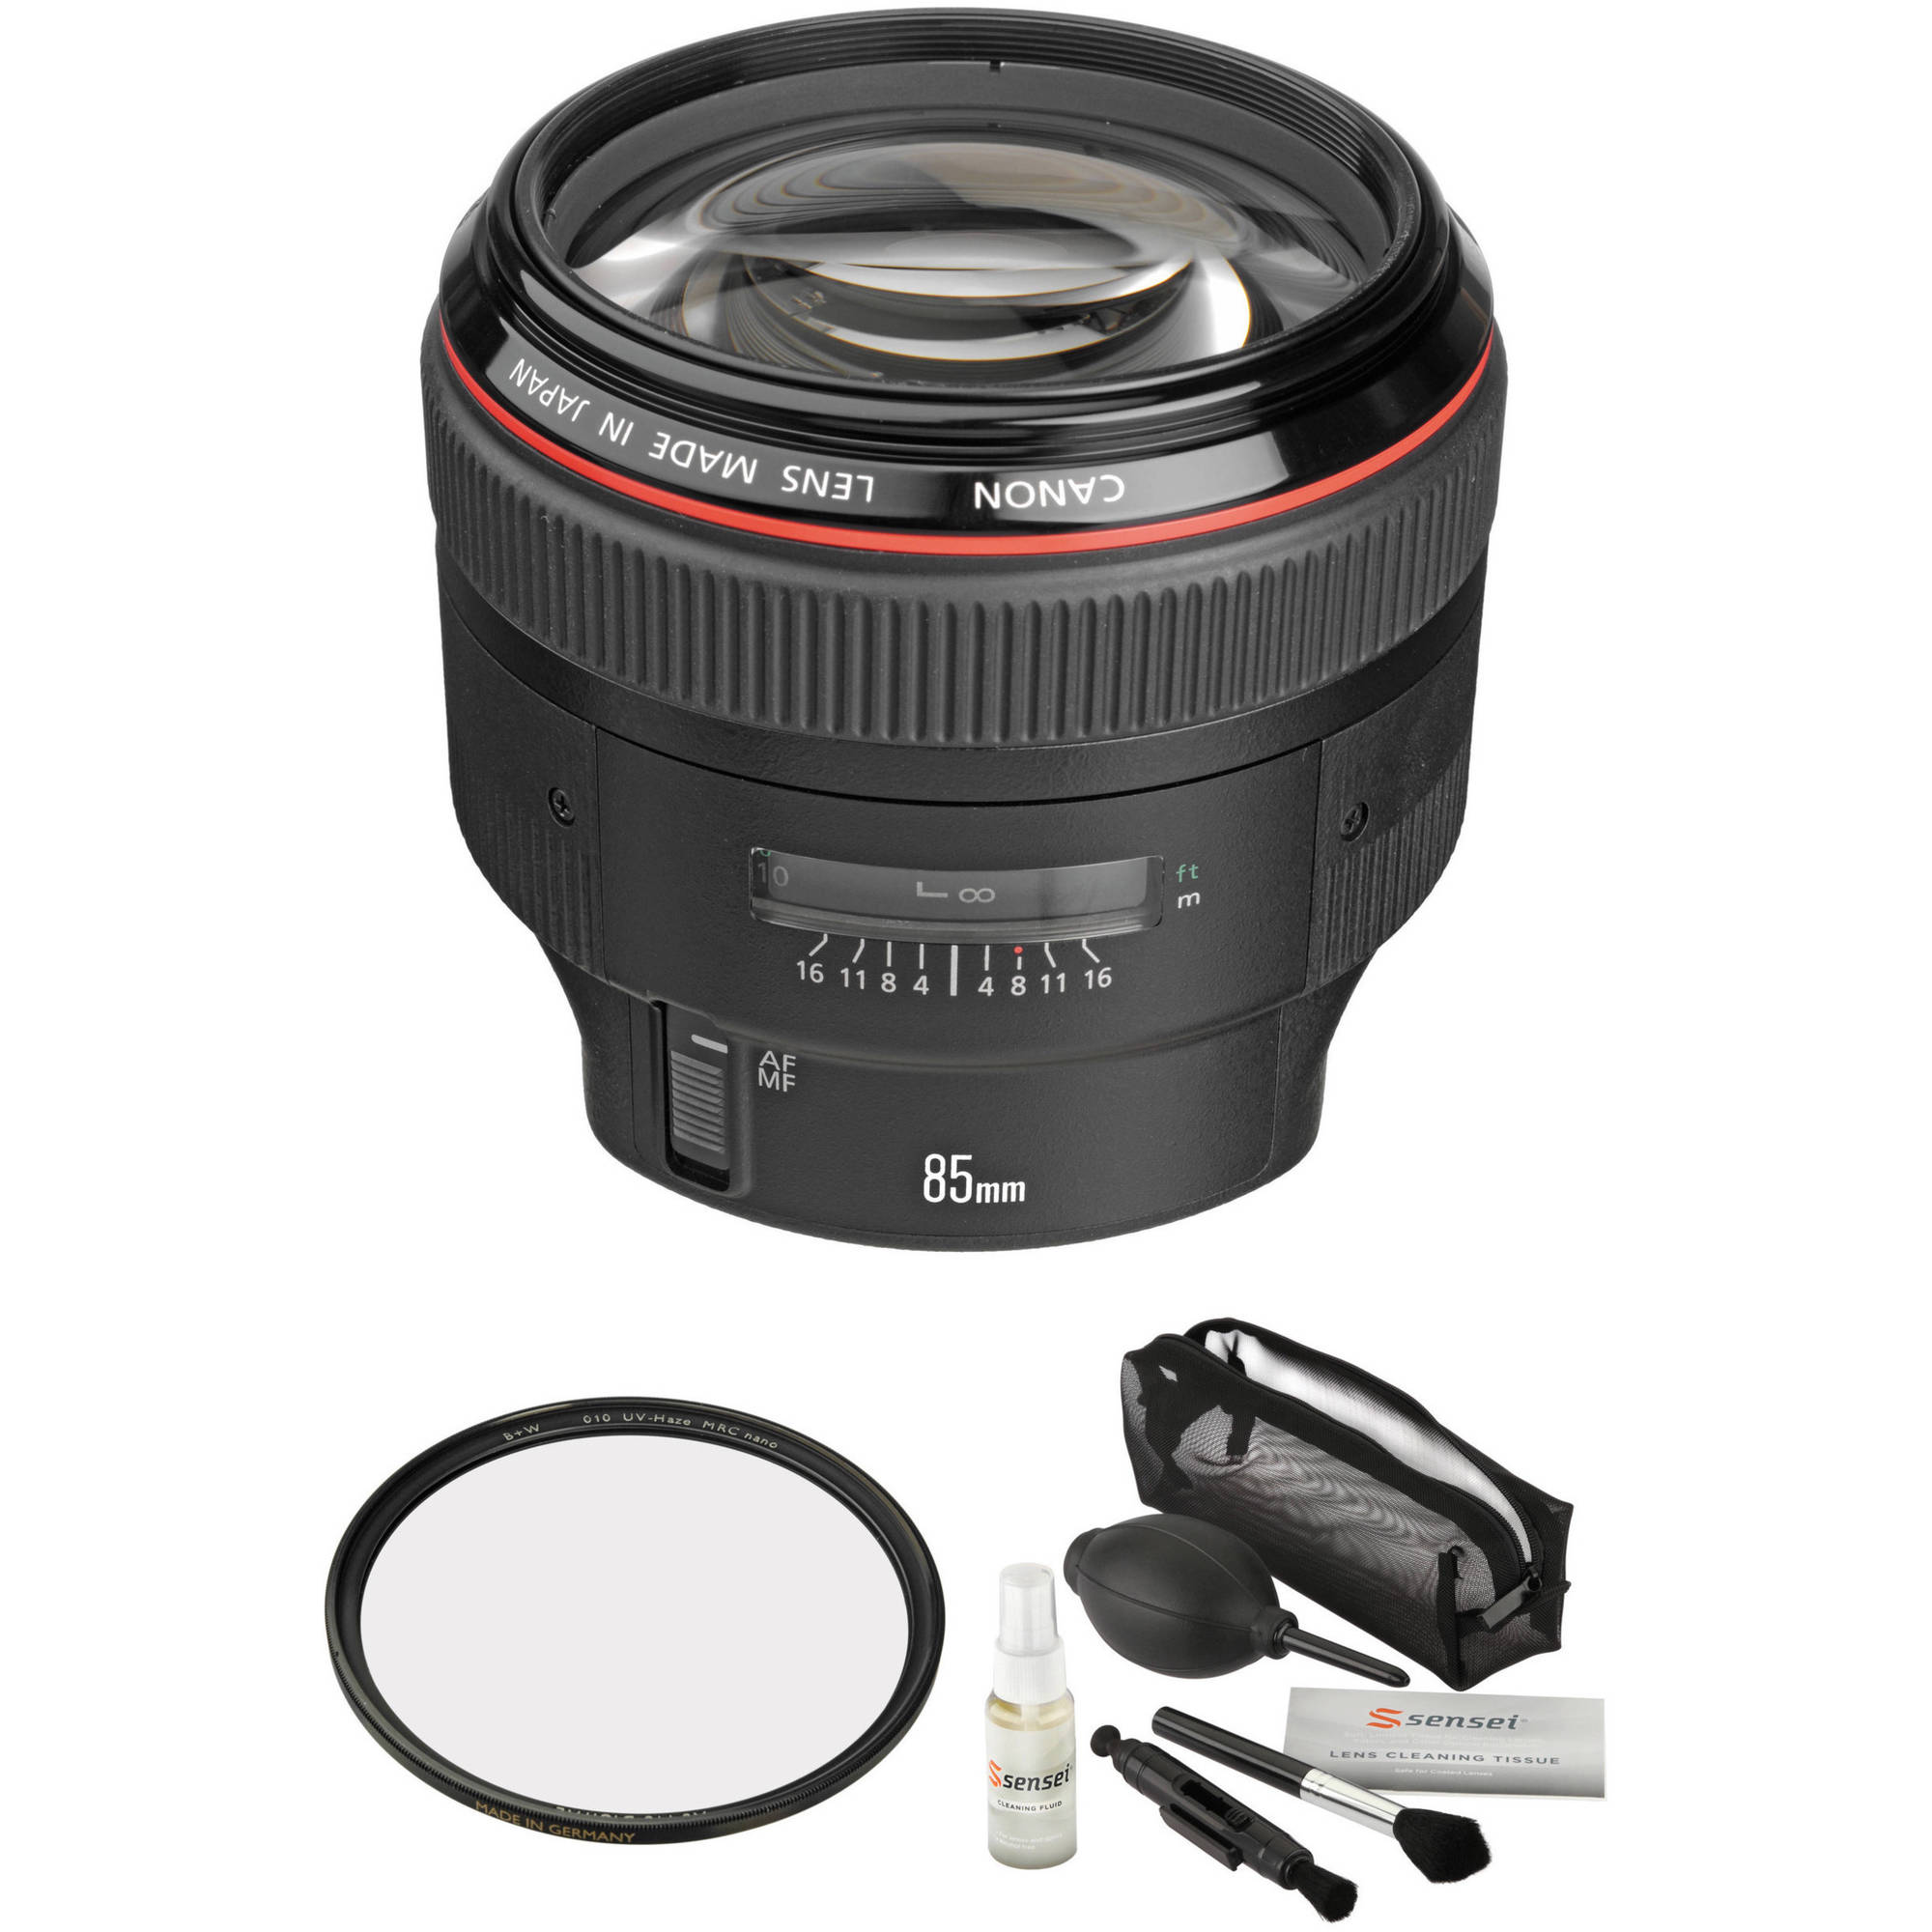 Ultraviolet UV Multi-Coated HD Glass Protection Filter for Canon EF 28-135mm f//3.5-5.6 IS USM Lens